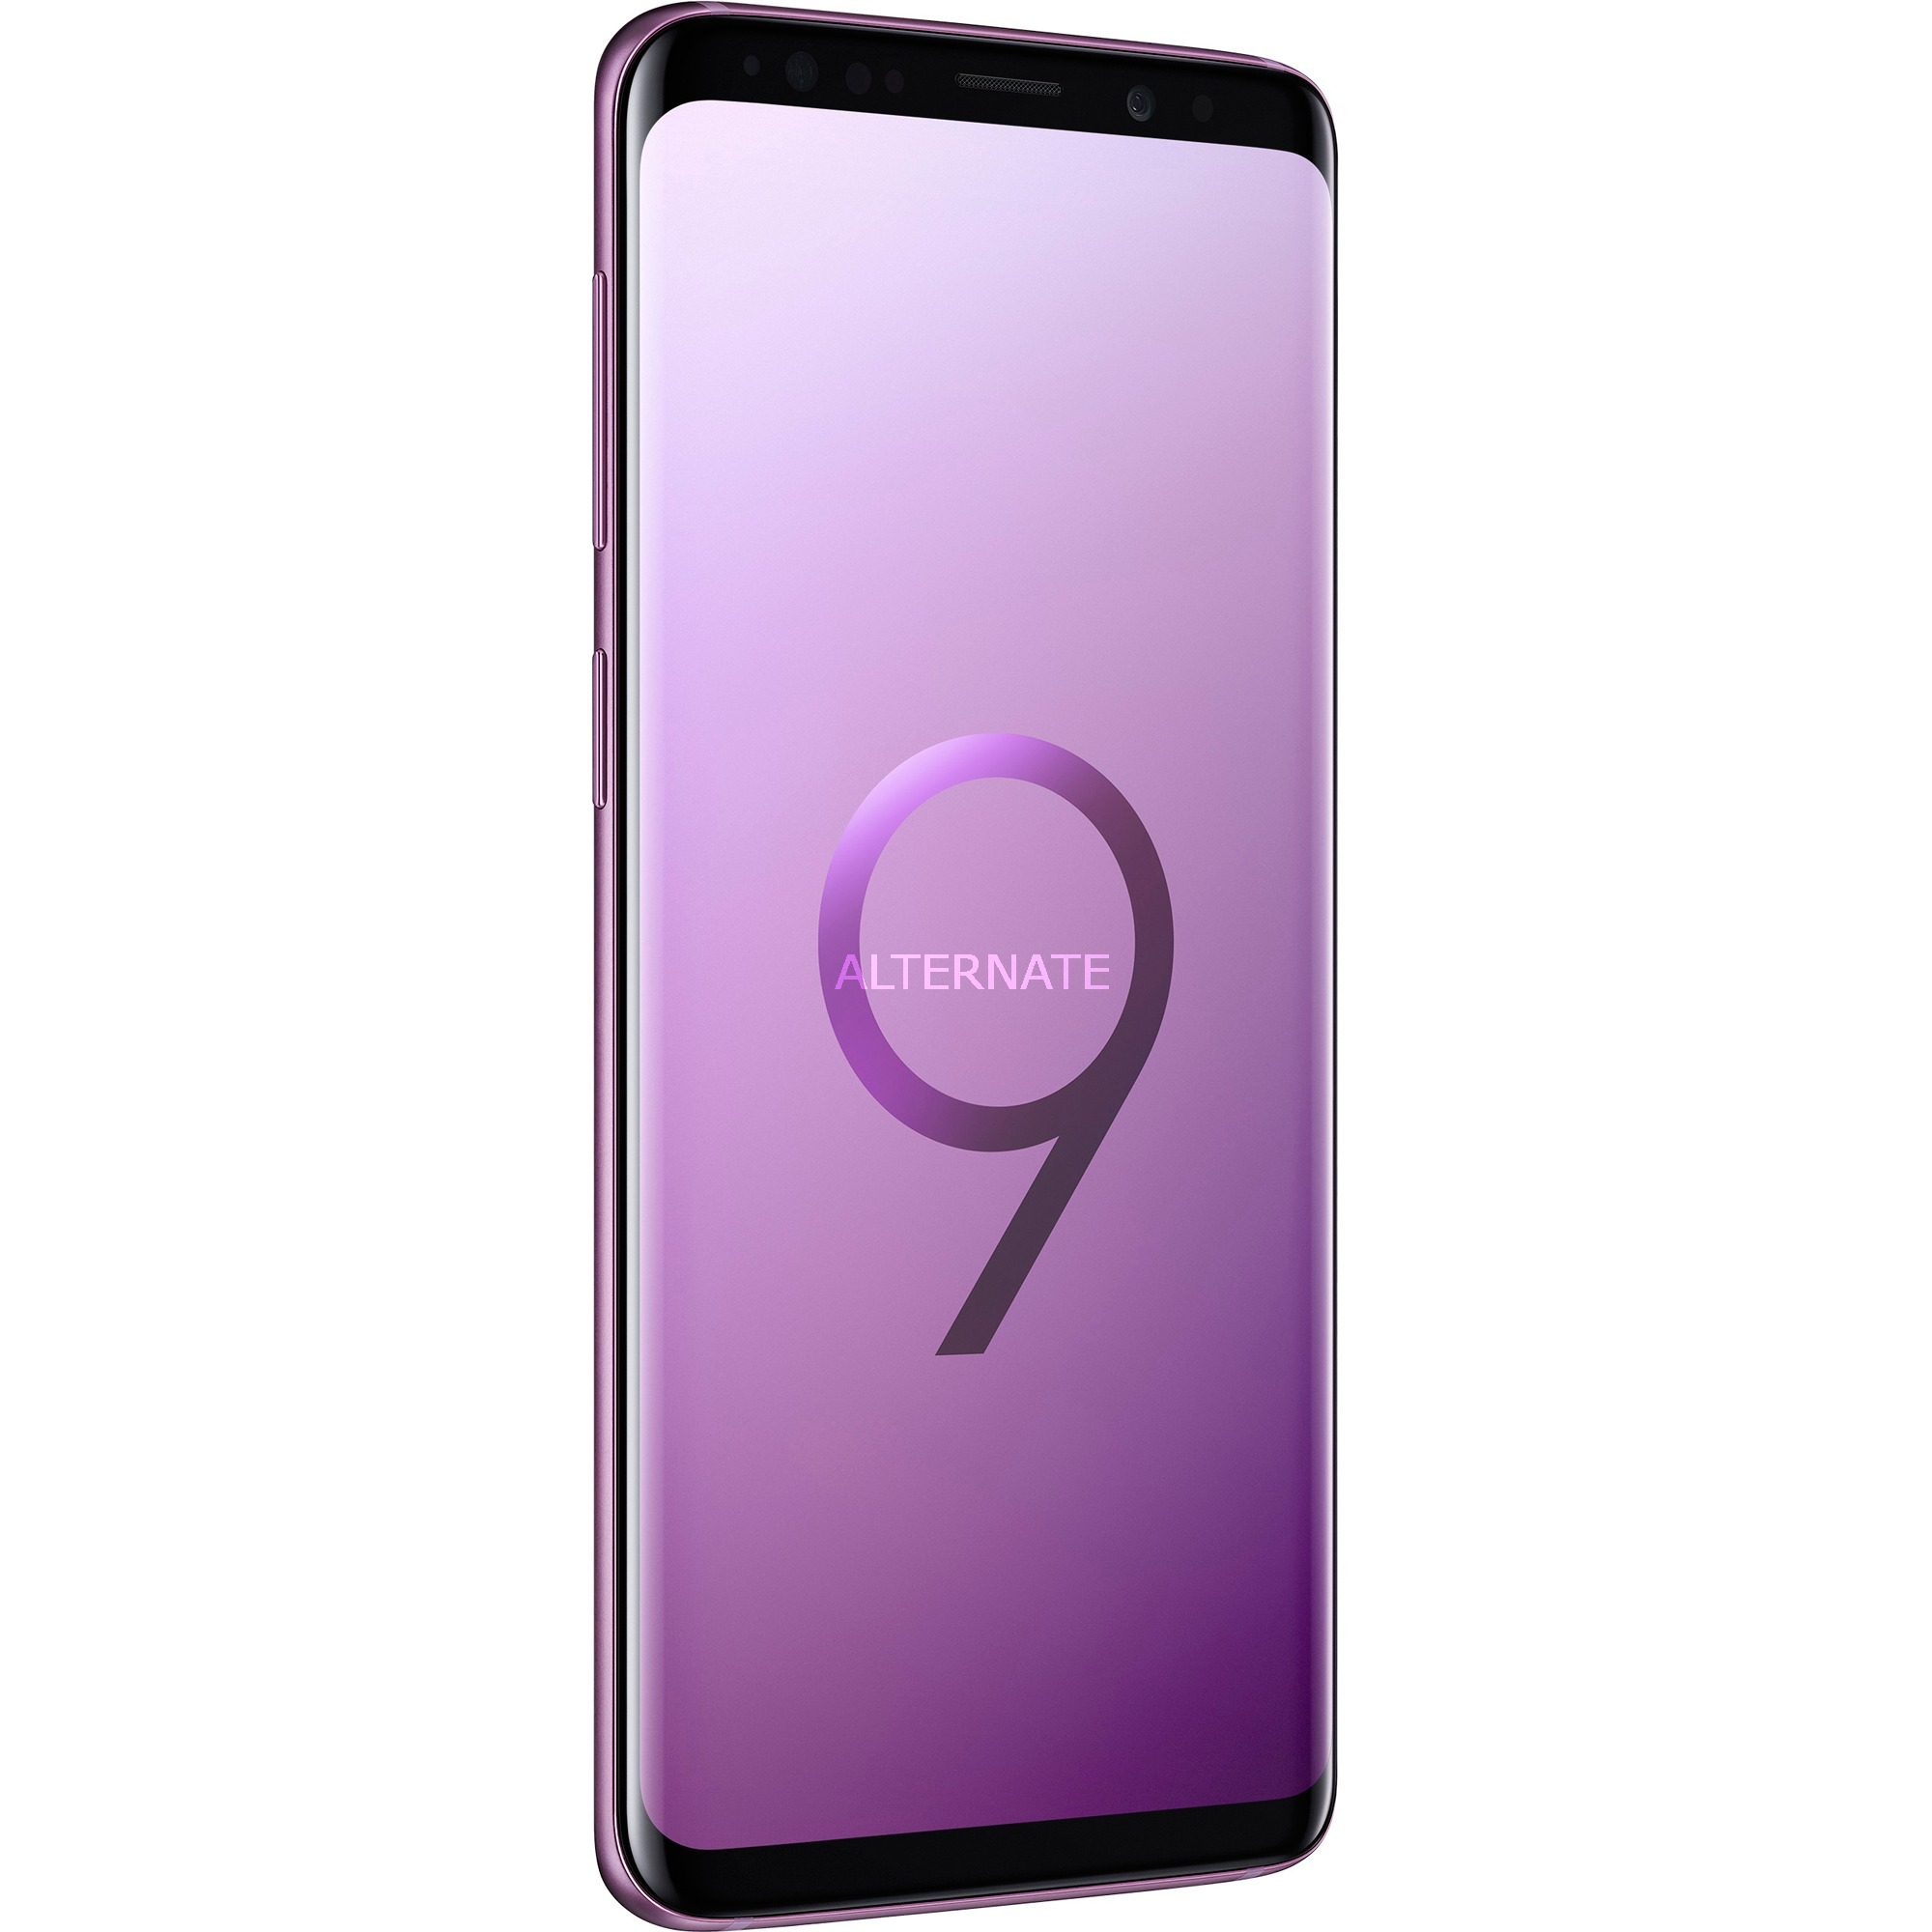 Samsung Galaxy S9+ DUOS 64GB, Handy